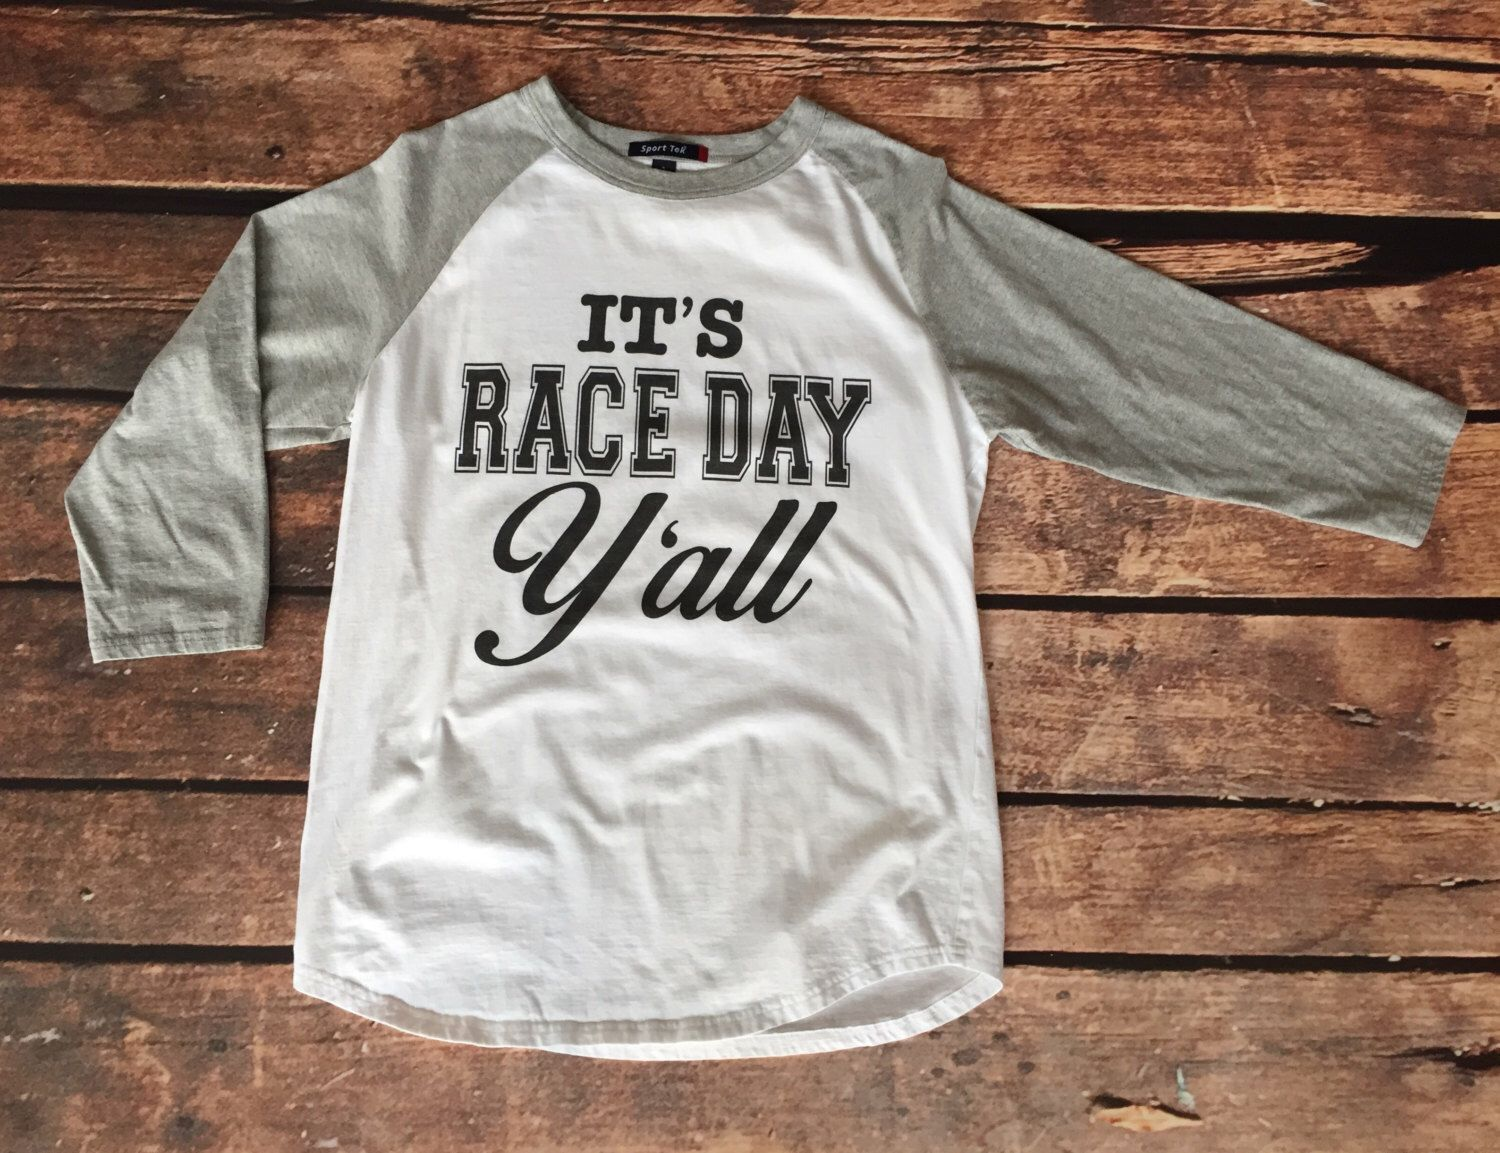 9c9430c9 Racing Shirt, It's Race Day Y'all, Race Day Shirt, Racing Shirt, Y ...